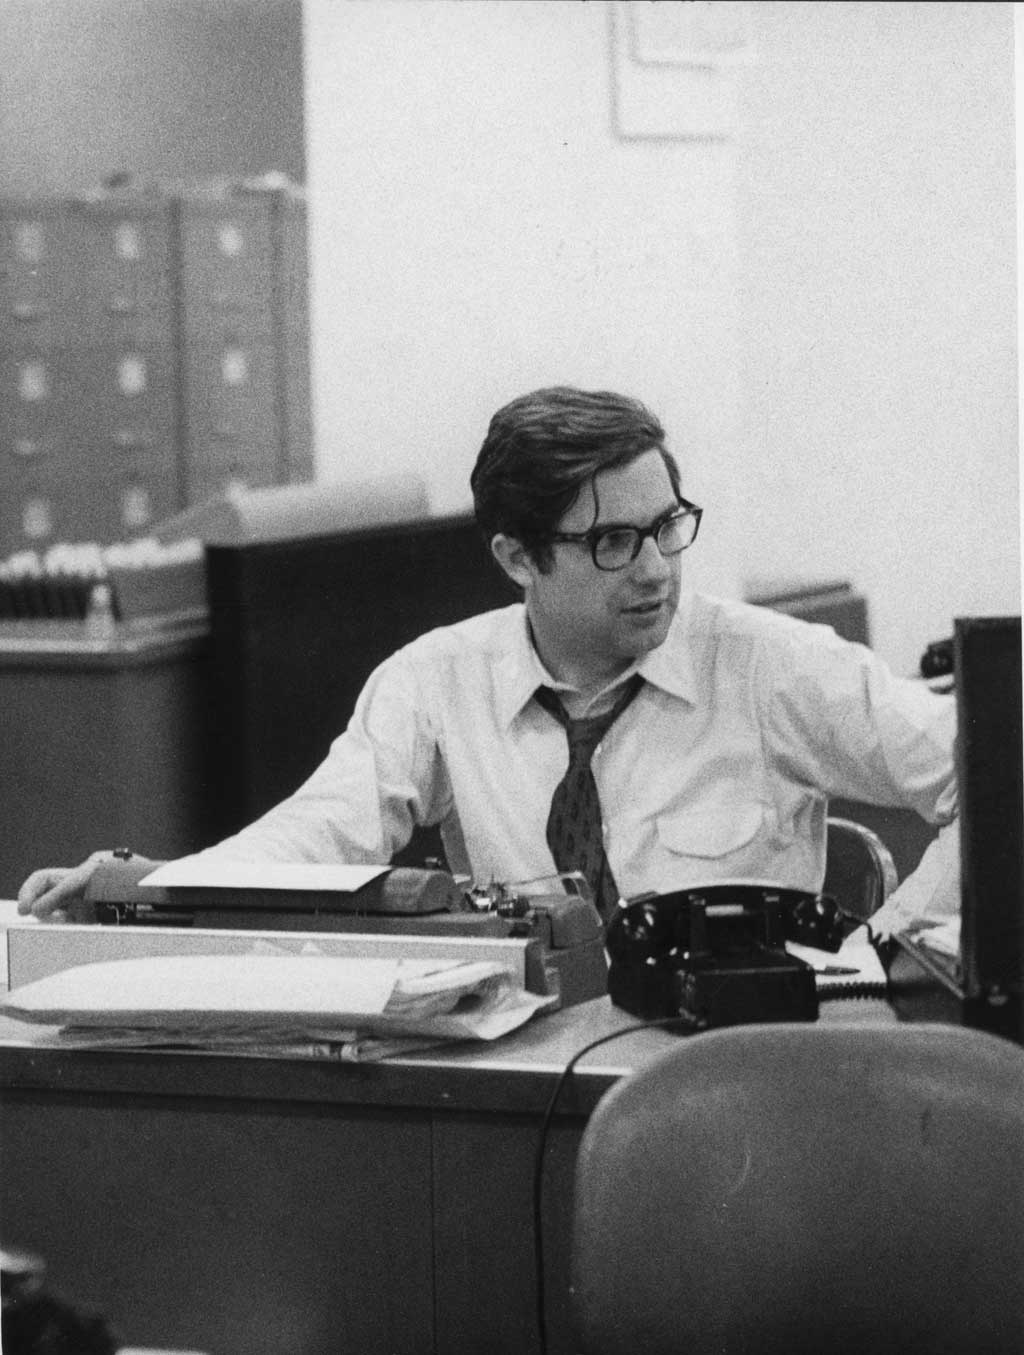 Neil Sheehan, the New York Times reporter who broke the Pentagon Papers story, at his desk at the newsroom in Manhattan, May 1, 1972. Neil Sheehan, the Vietnam War correspondent and Pulitzer Prize-winning author who obtained the Pentagon Papers for The New York Times, leading the government for the first time in American history to get a judge to block publication of an article on grounds of national security, died on Thursday, Jan. 7, 2021, at his home in Washington. He was 84. Susan Sheehan, his wife, said the cause was complications of Parkinson's disease. (Barton Silverman/The New York Times)